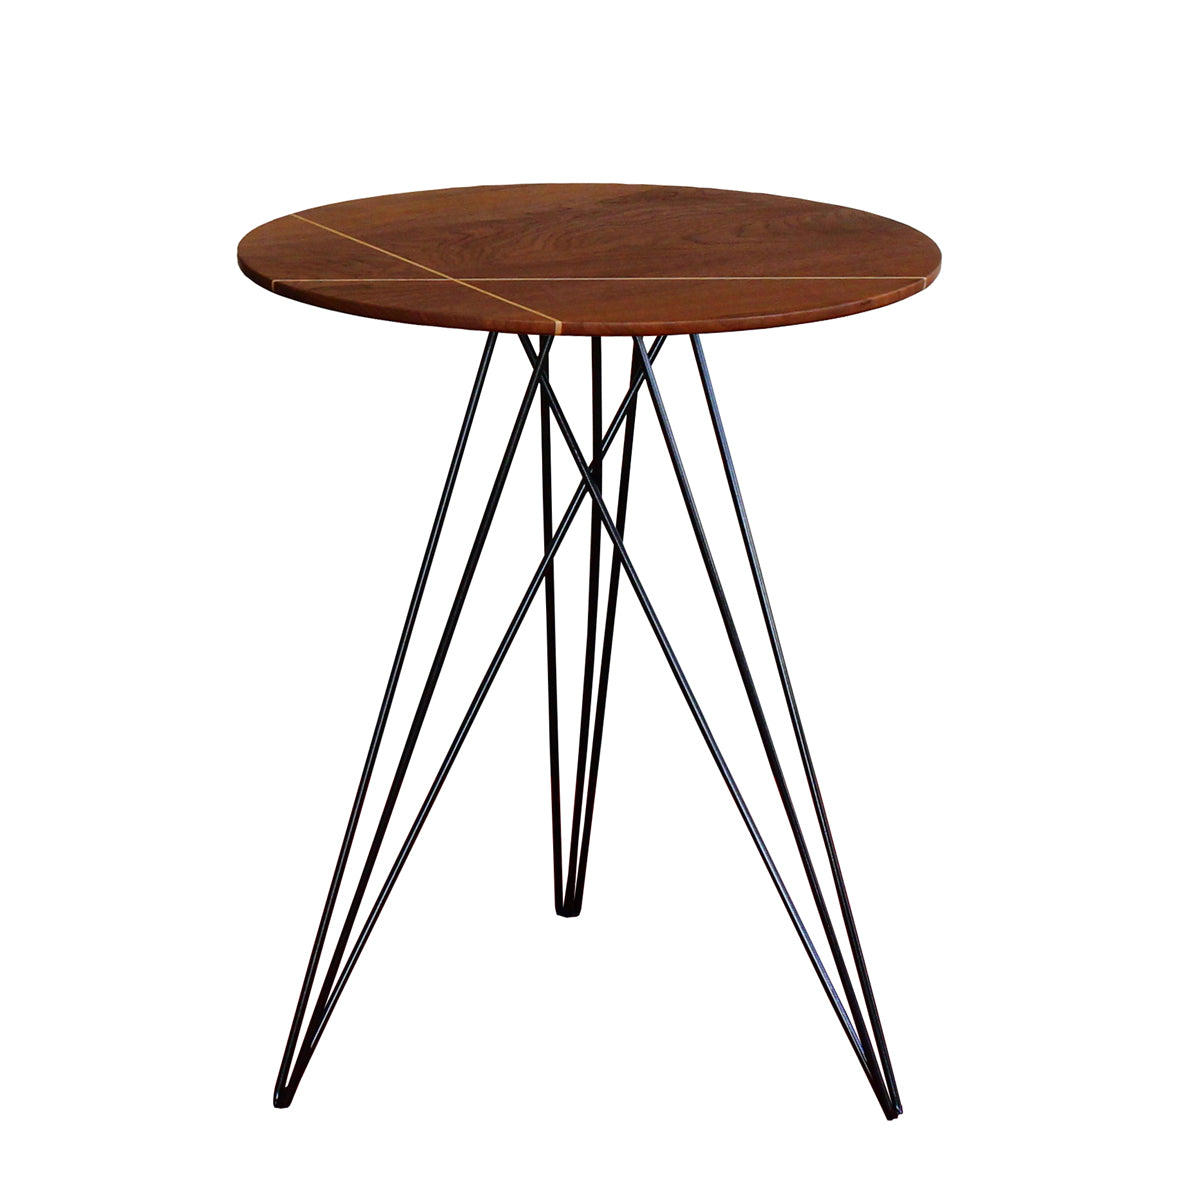 Tronk Design Hudson Side Table with Inlay Walnut